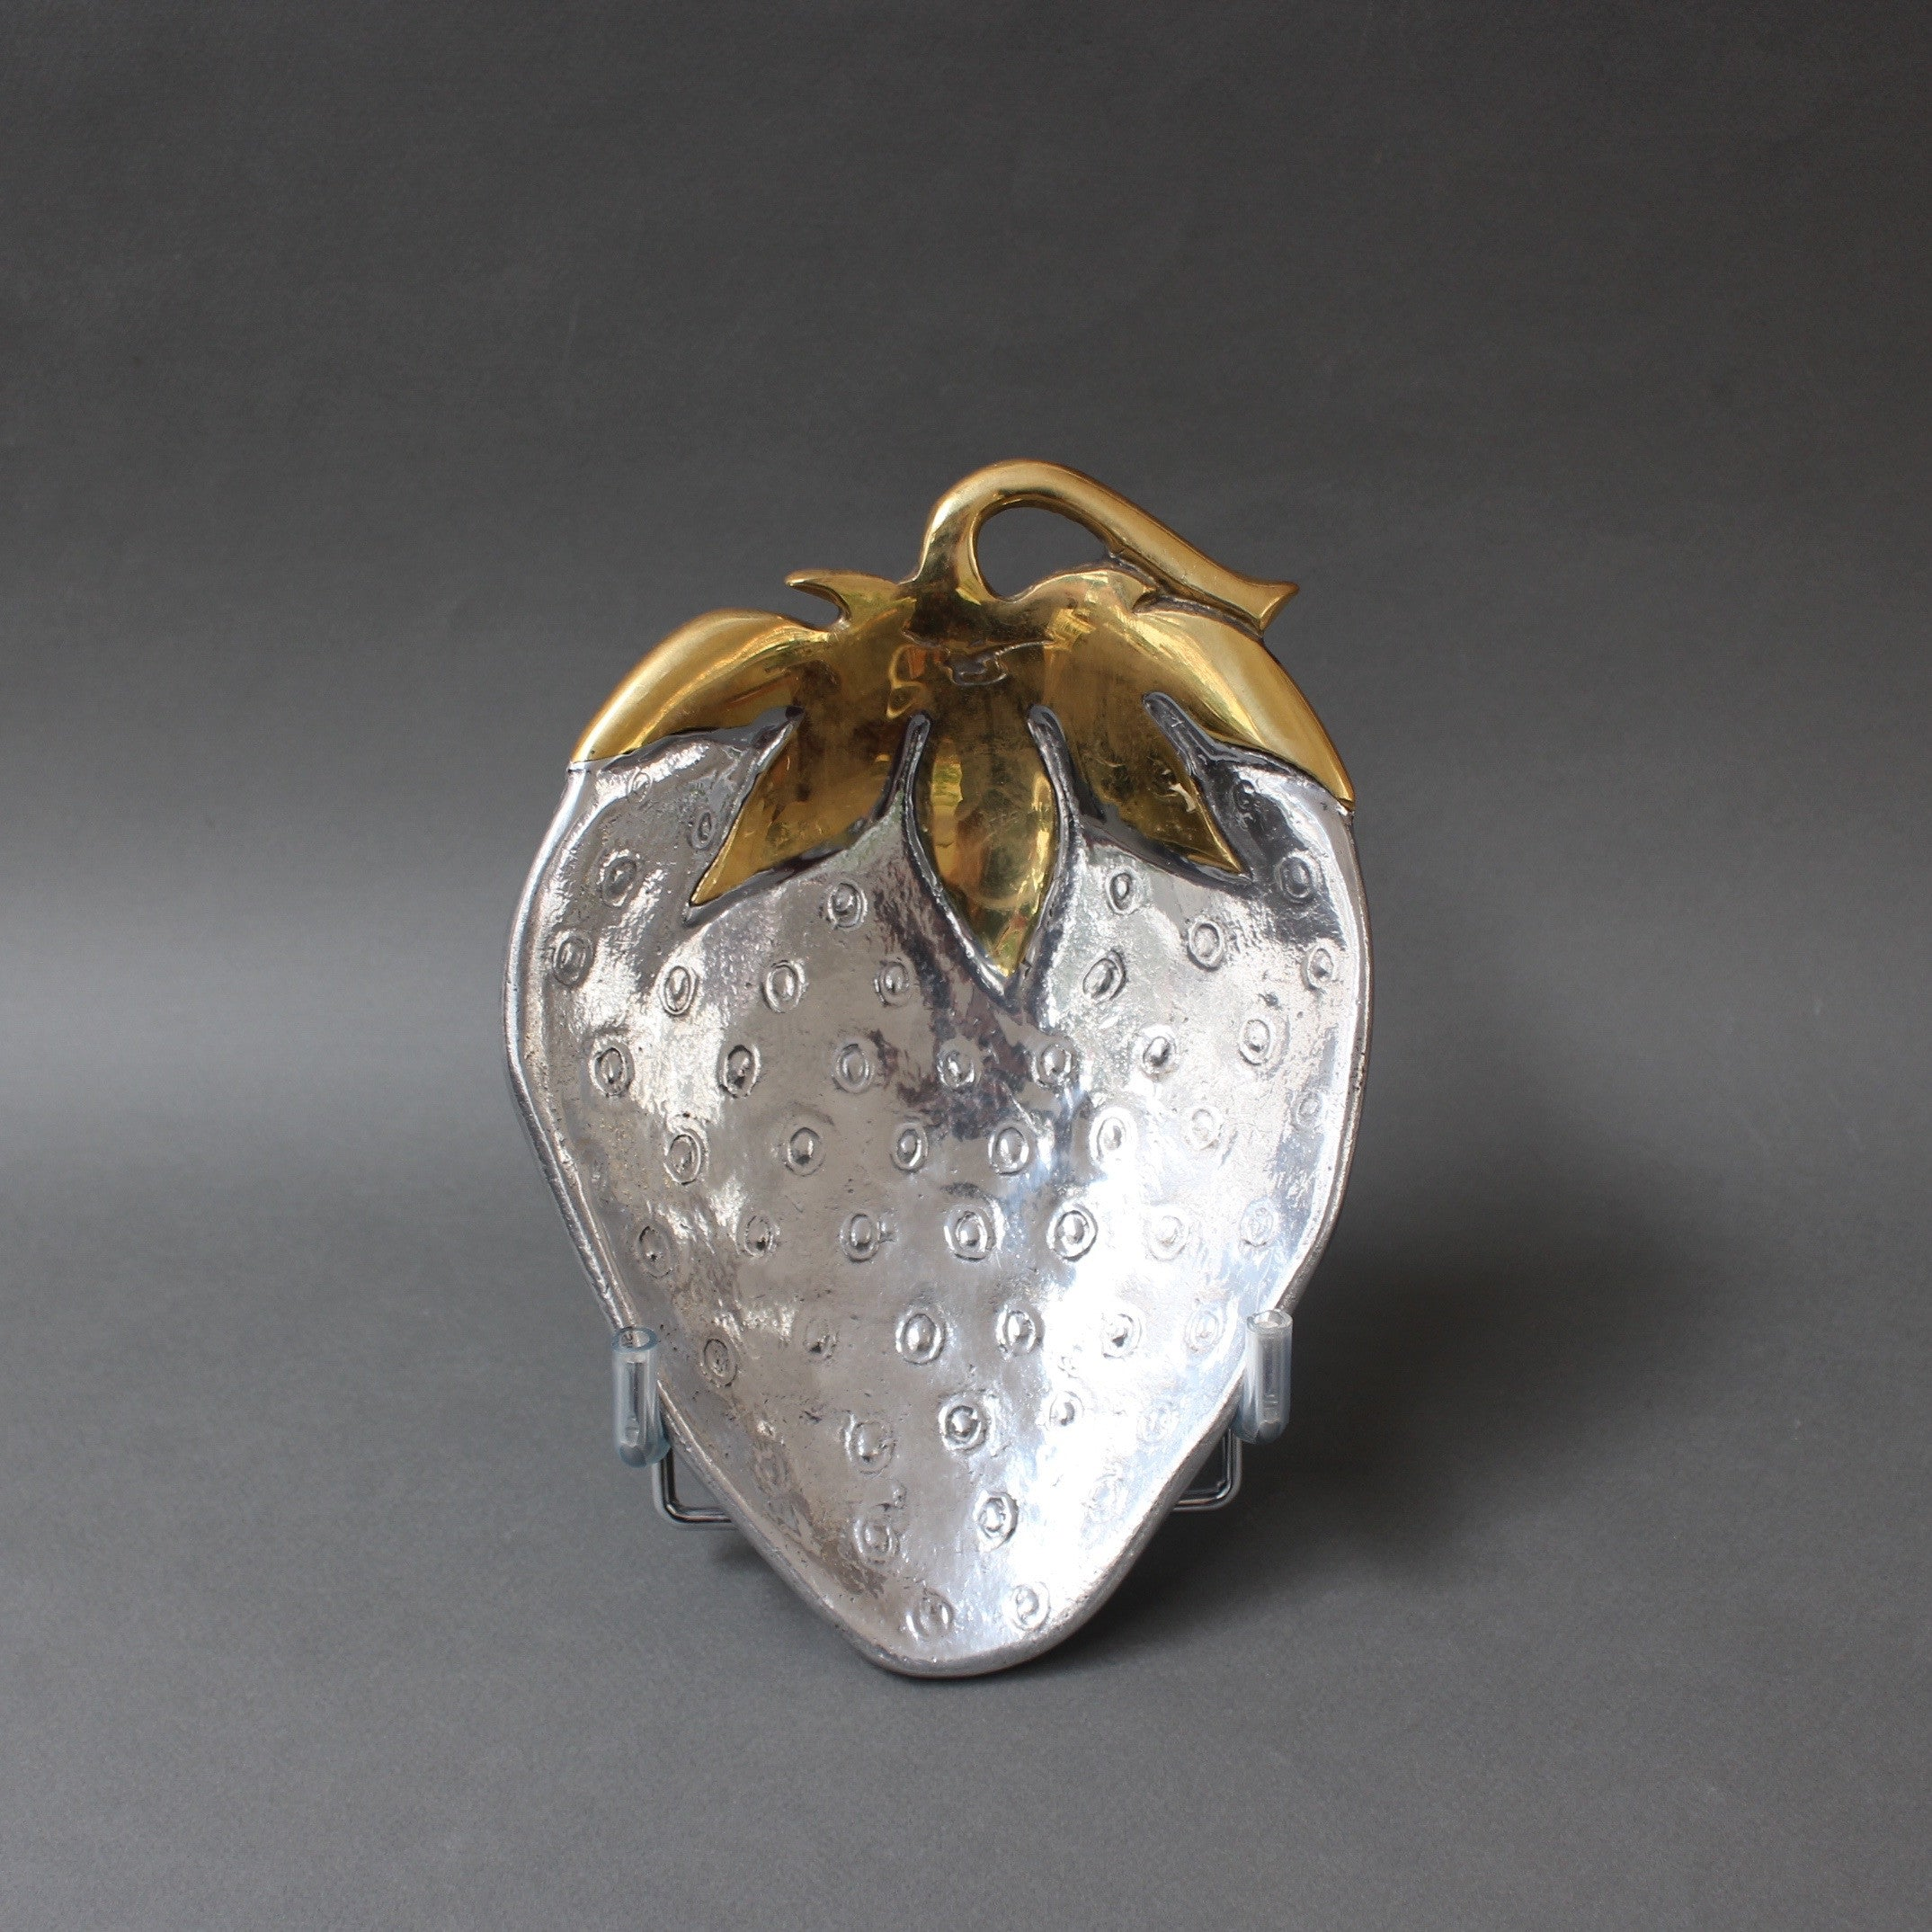 Decorative Aluminium and Brass Strawberry-Shaped Tray in the Style of David Marshall (c. 1970s)